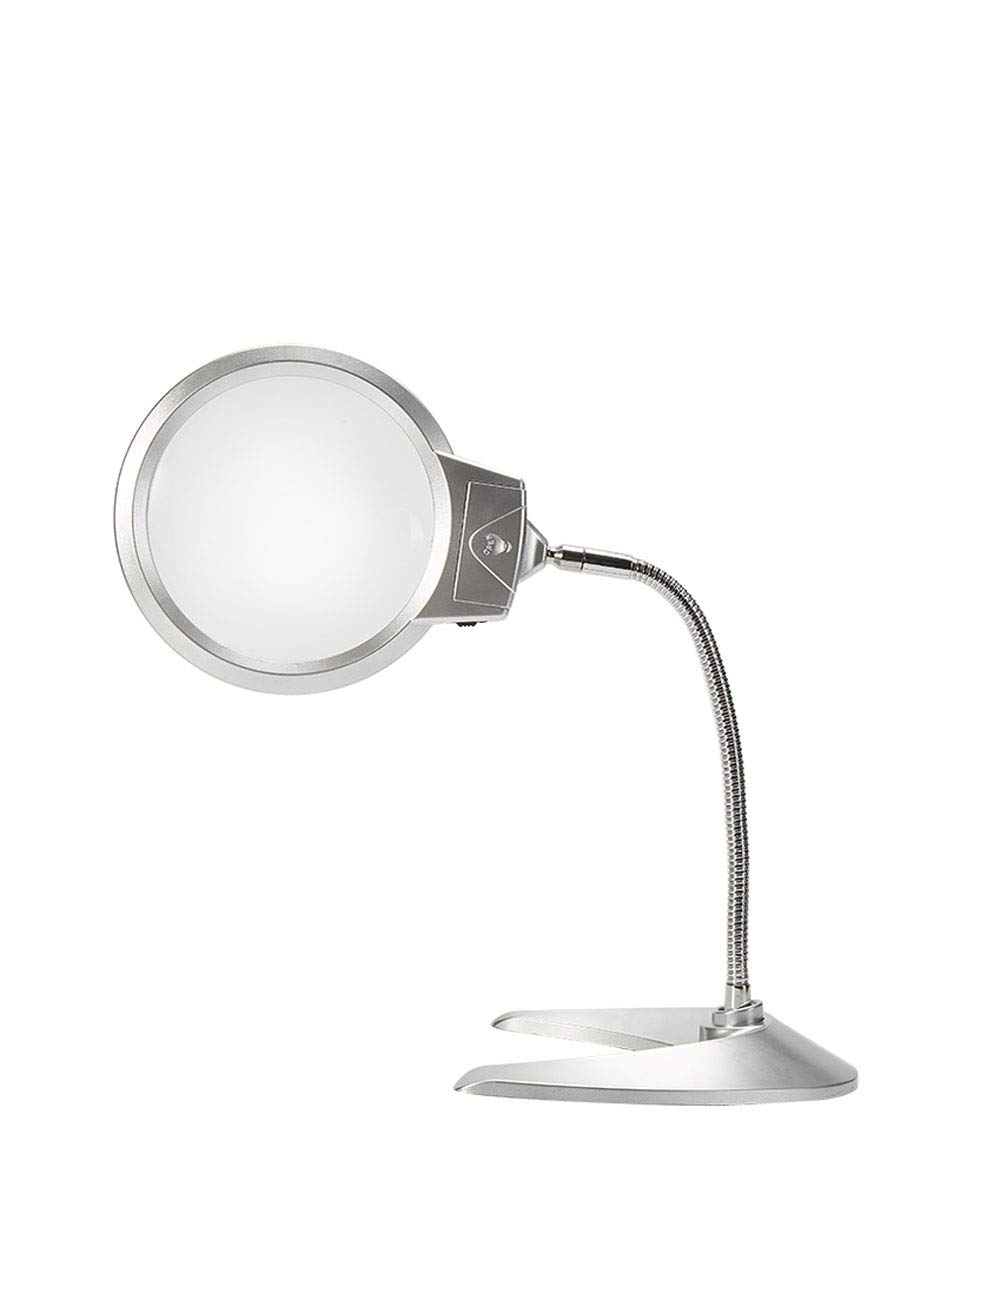 GZRR Magnifier LED Desktop Magnifier Reading Magnifier Multifunction Magnifier 5X 10x, Ultra HD, for Inspection and Maintenance, Elderly Reading, Electronic Lighting, Hand Sewing Upgraded Version